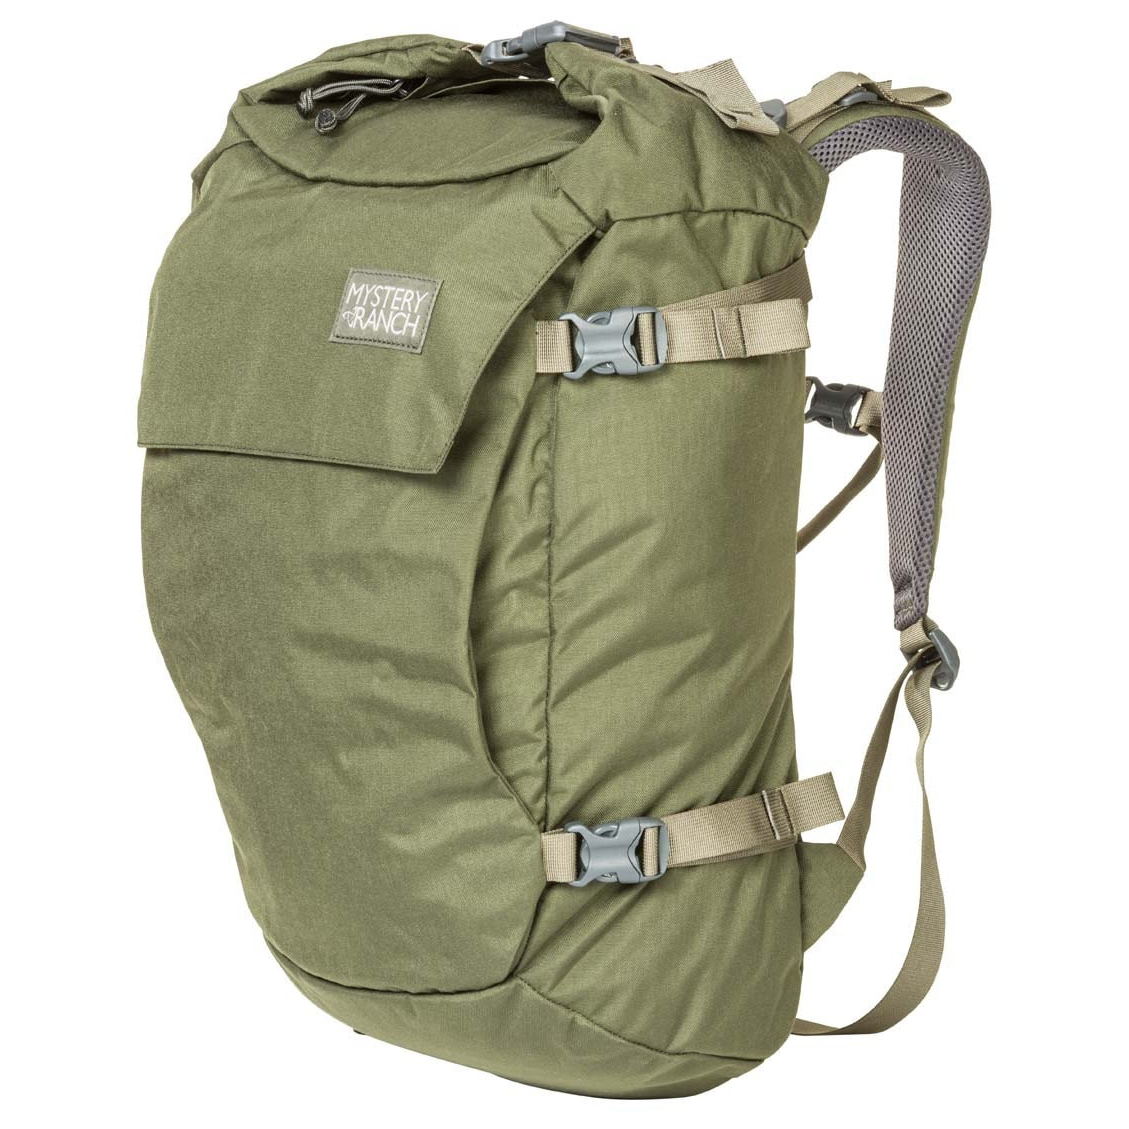 c68a49adf Mystery Ranch Street Zen - Daypack | Free EU Delivery | Bergfreunde.eu